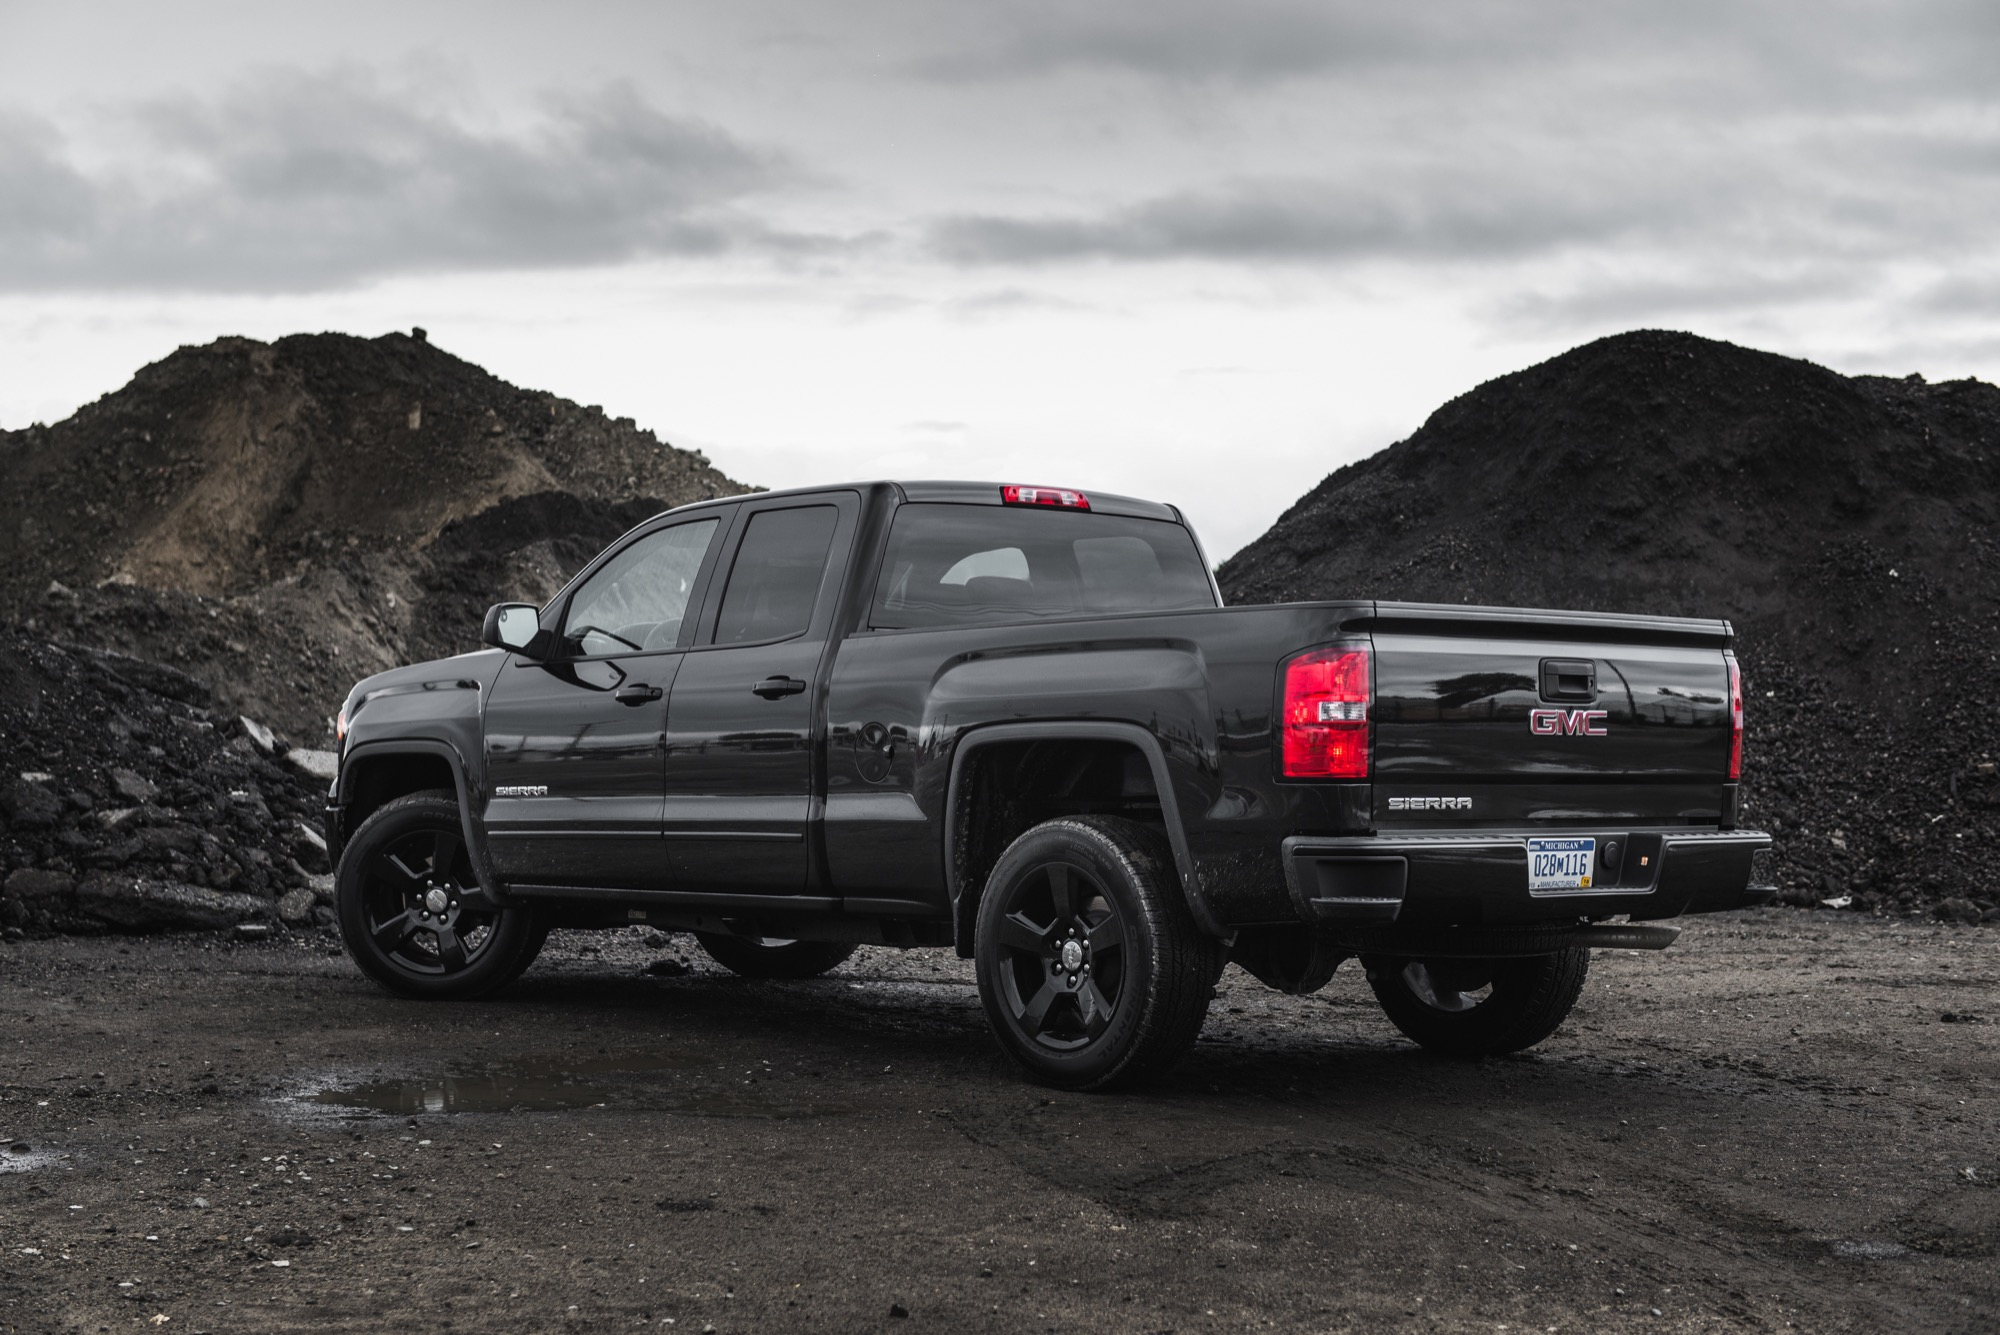 2015 Gmc Sierra 1500 Elevation Edition Review Gm Authority